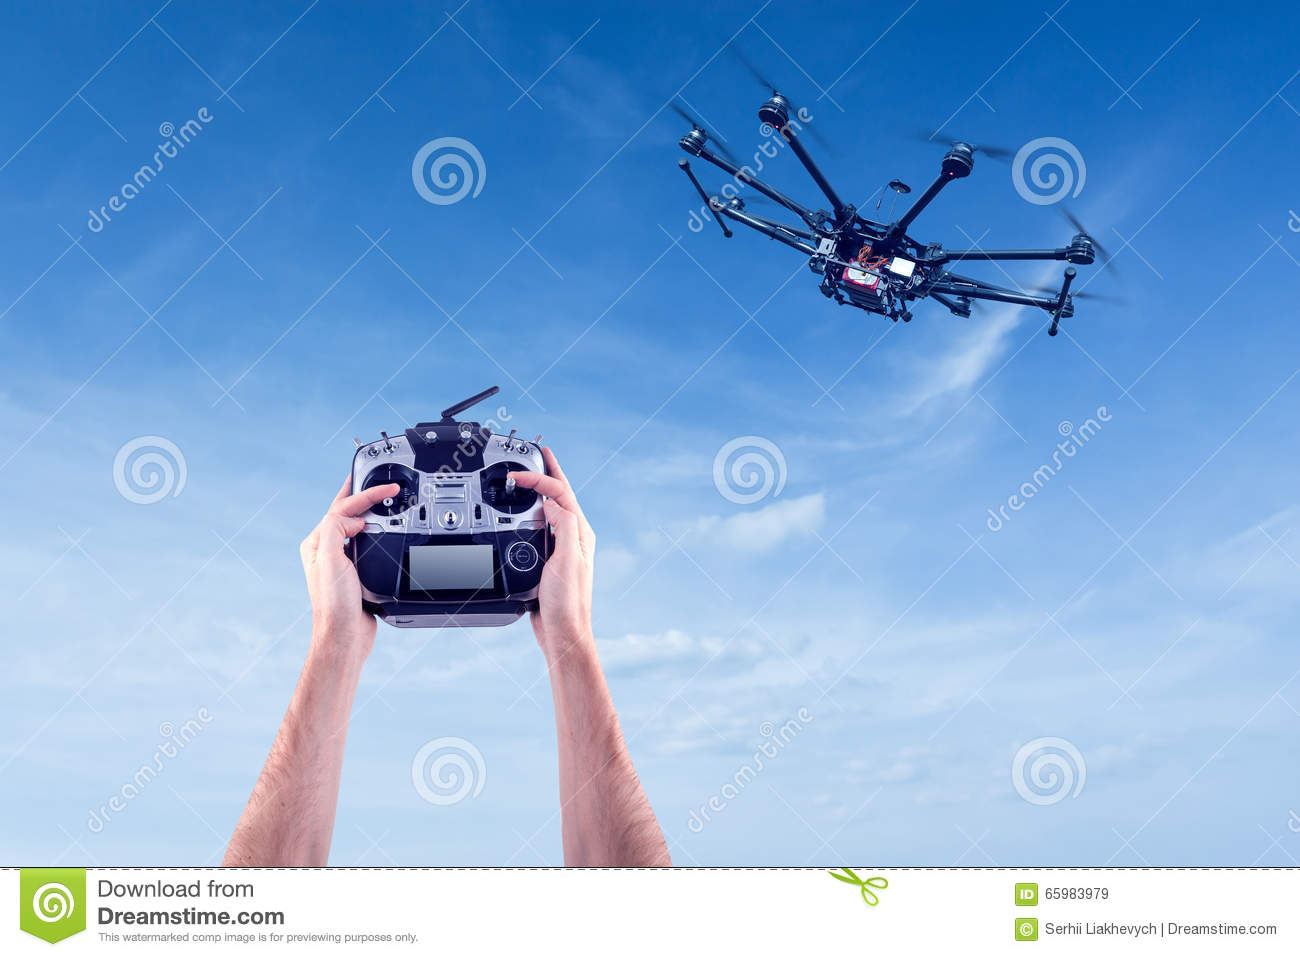 toy drones with camera transmitter with Stock Photo Man Controls Flying Drones Hands Radio Control Drone Background Beautiful Blue Sky Image65983979 on Yuneec Q500 4k Review also Goolrc 210 Uav Rtf Rc Fpv Quad Racing Drone A  plete Review further JJRC H43WH Mini Foldable RC Selfie Drone BNF 372120906840 besides Panther Drone Ufo Rc Quadcopter likewise Amazingbuy Syma X5c 1 2 4ghz 6 Axis Gyro Rc Quadcopter Drone Uav Rtf Ufo With Hd Camera New Updated Upgraded Version X5c 1 Smaller Packing Orginal Box 4 Additional Propellers 2gb Memory Card.